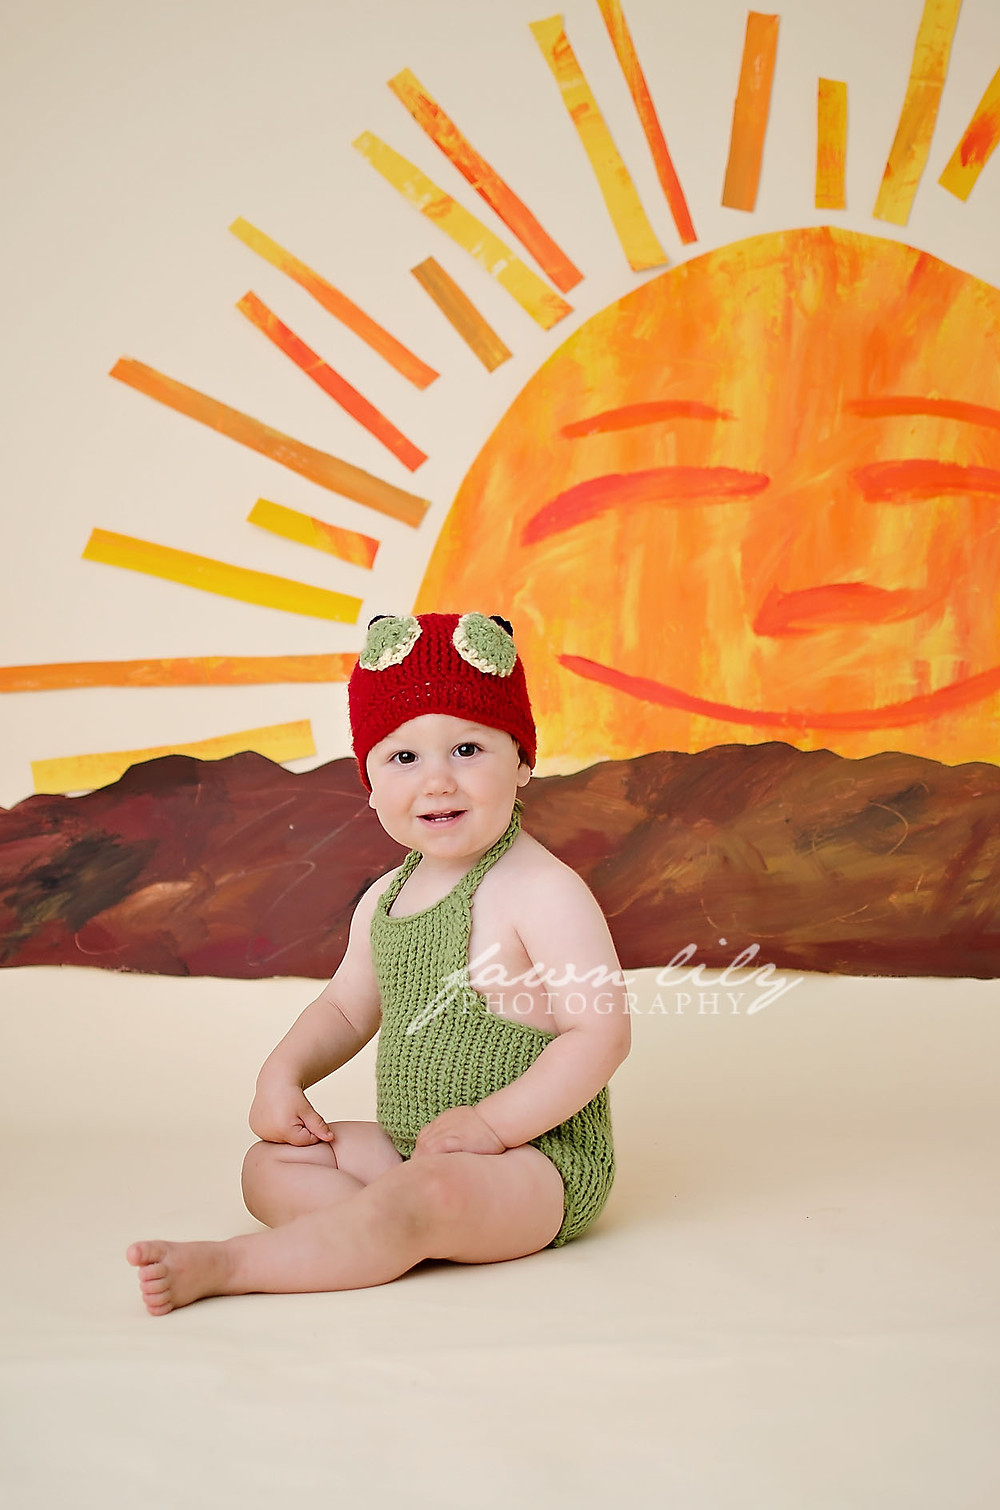 Huxley's Very Hungry Caterpillar Cake Smash by Fawn Lily Photography Sidney based studio photographer